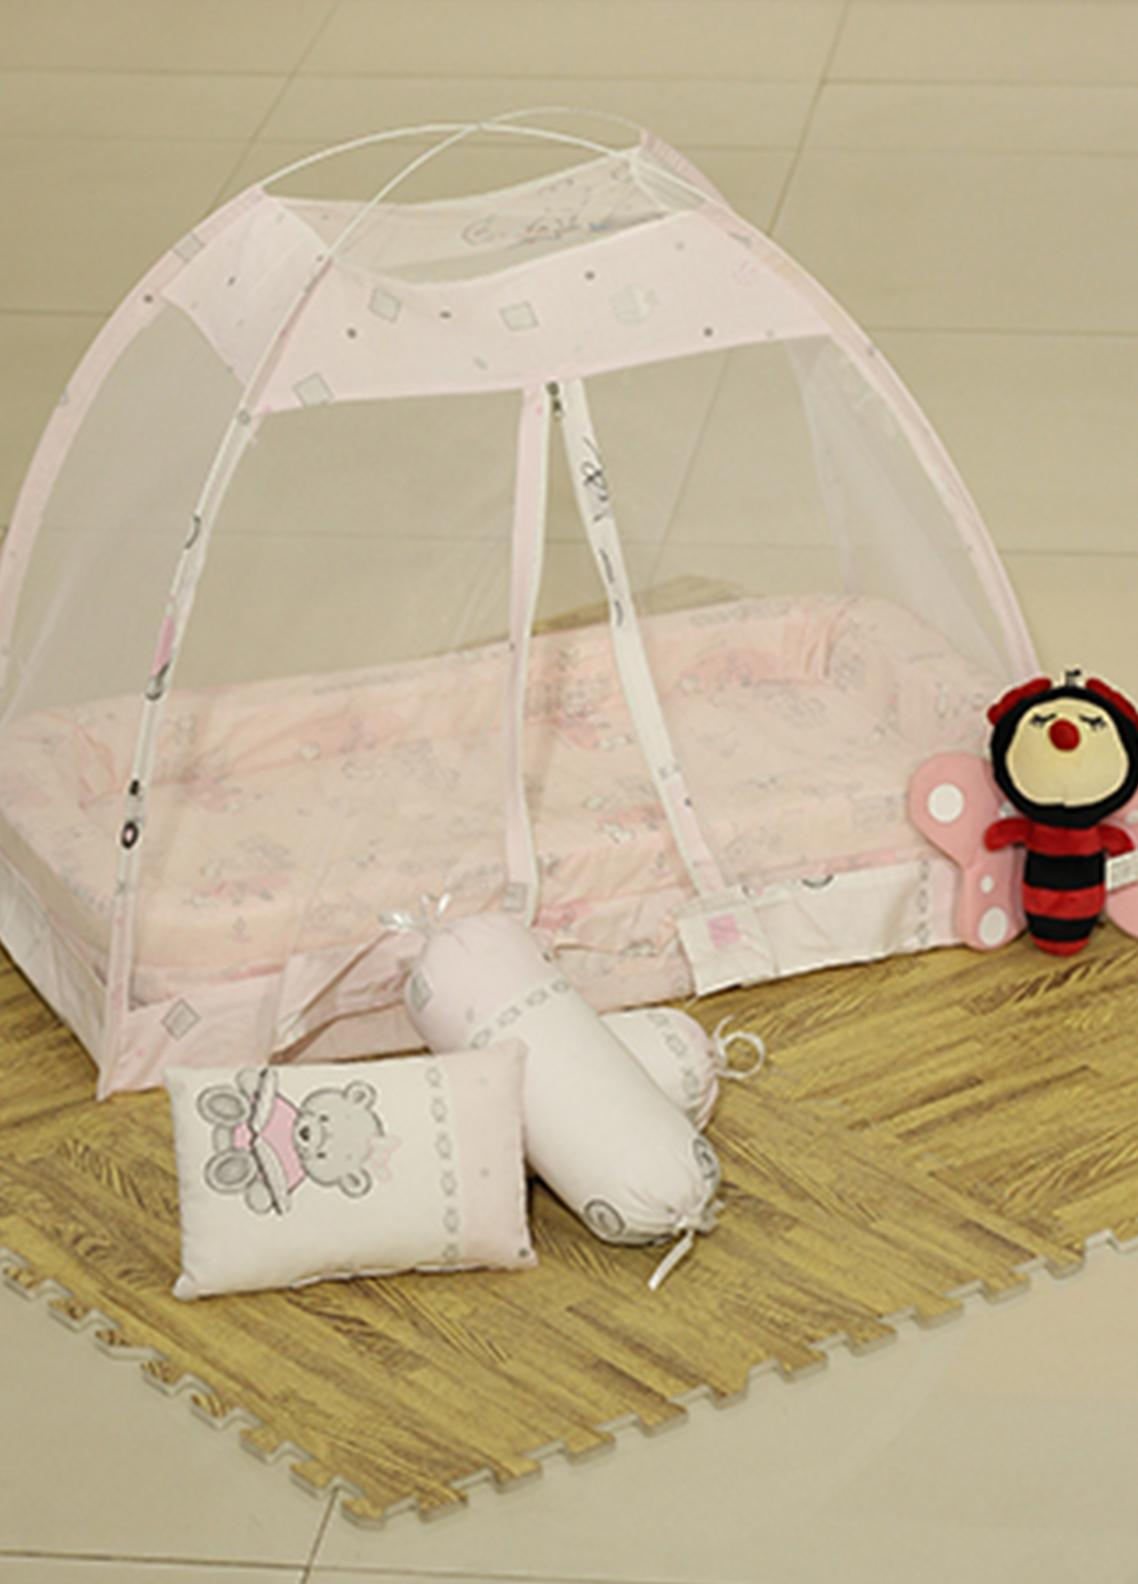 Plush Mink Fiber Bed Net Set 3 Pieces PEEKABOO Complete Bed Net Set 07 Pink - Baby Products